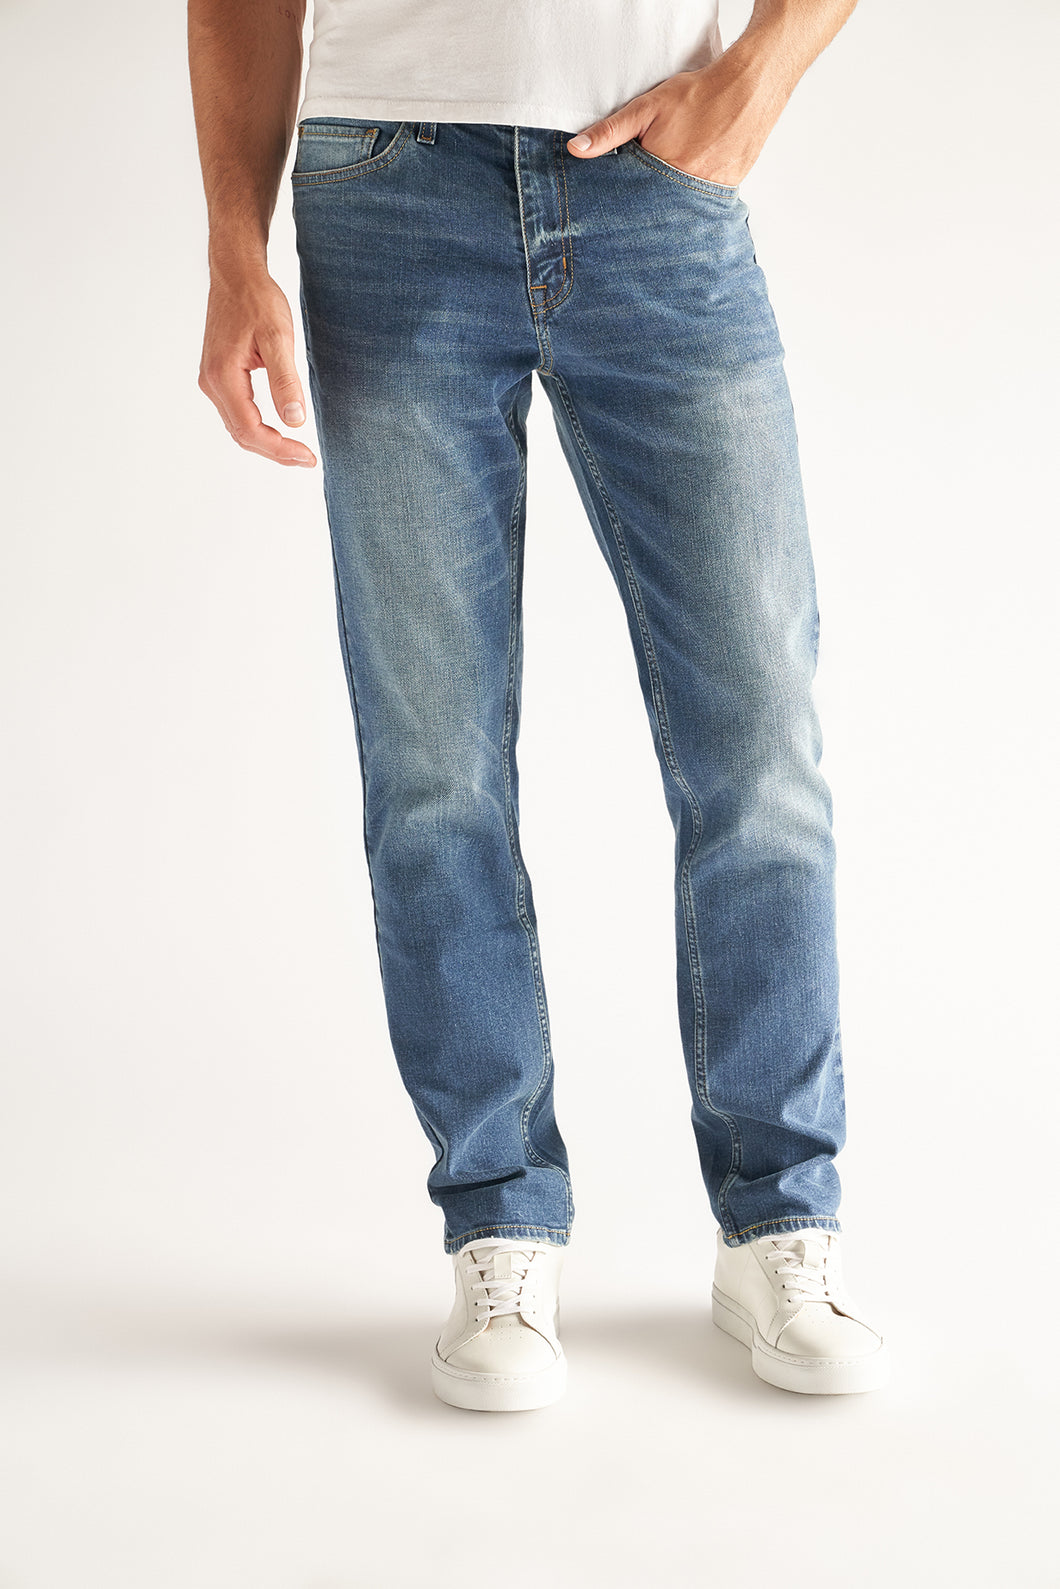 Slim-Straight Fit - Ash Wash (DD3001)